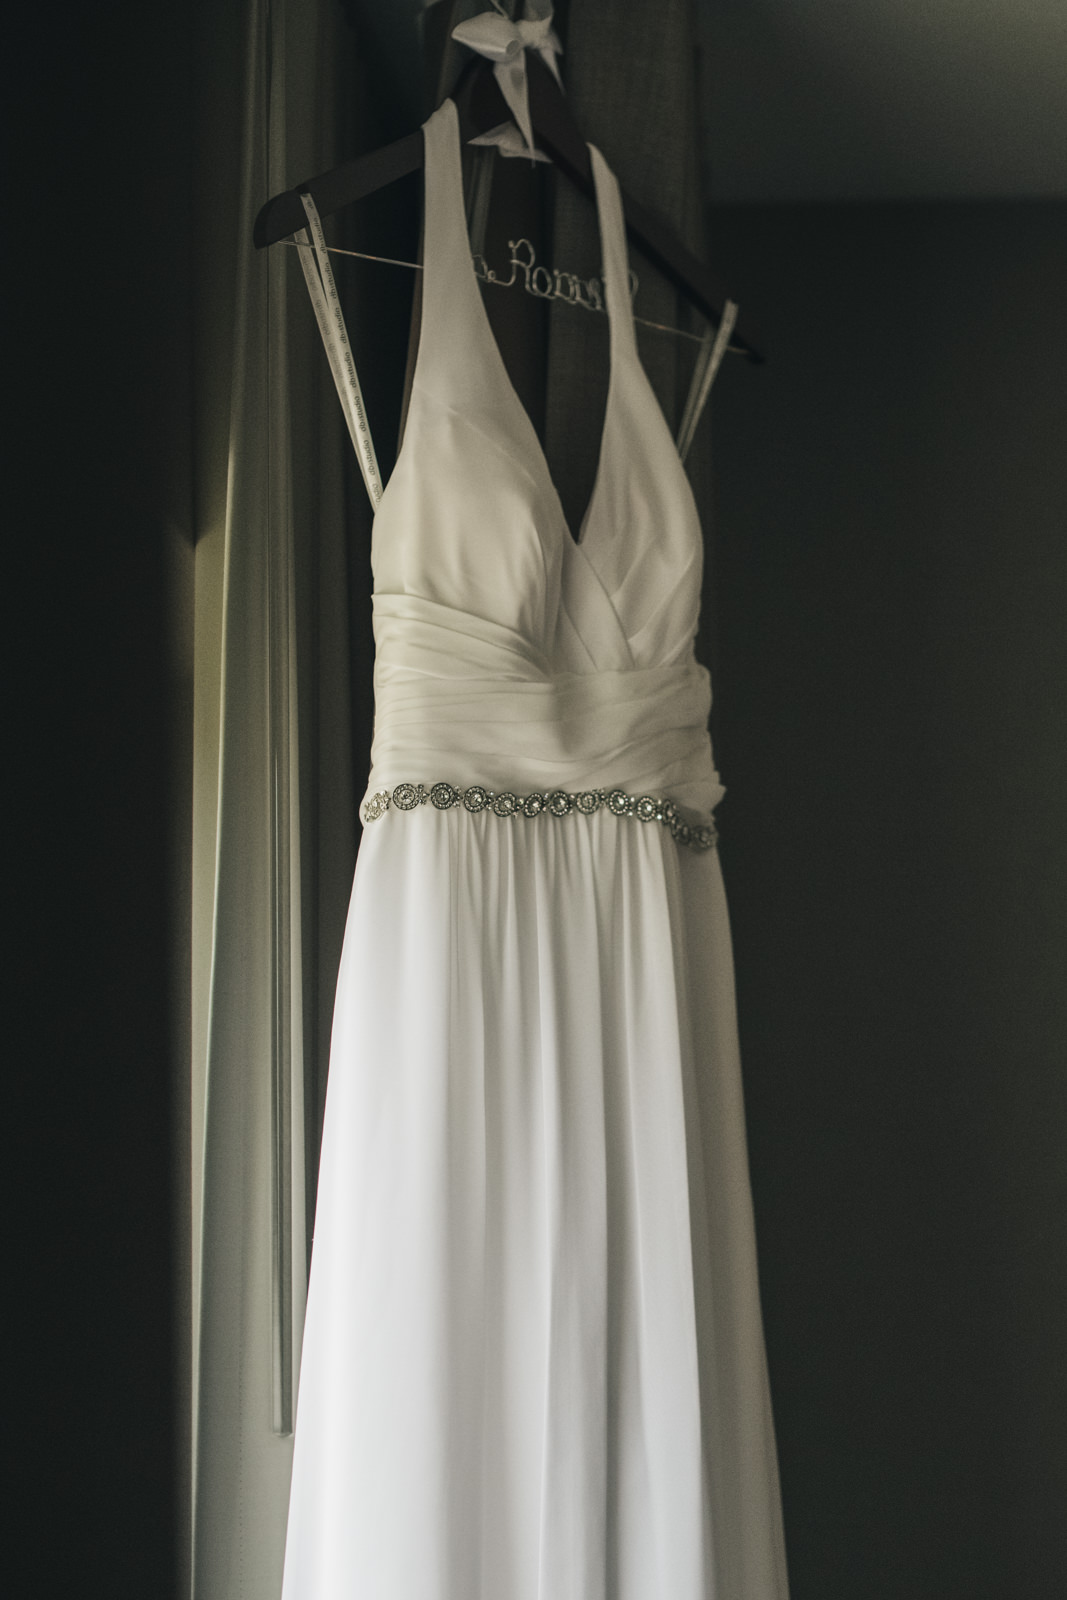 The brides dress before her elopement at the Toledo Botanical Gardens in Ohio.